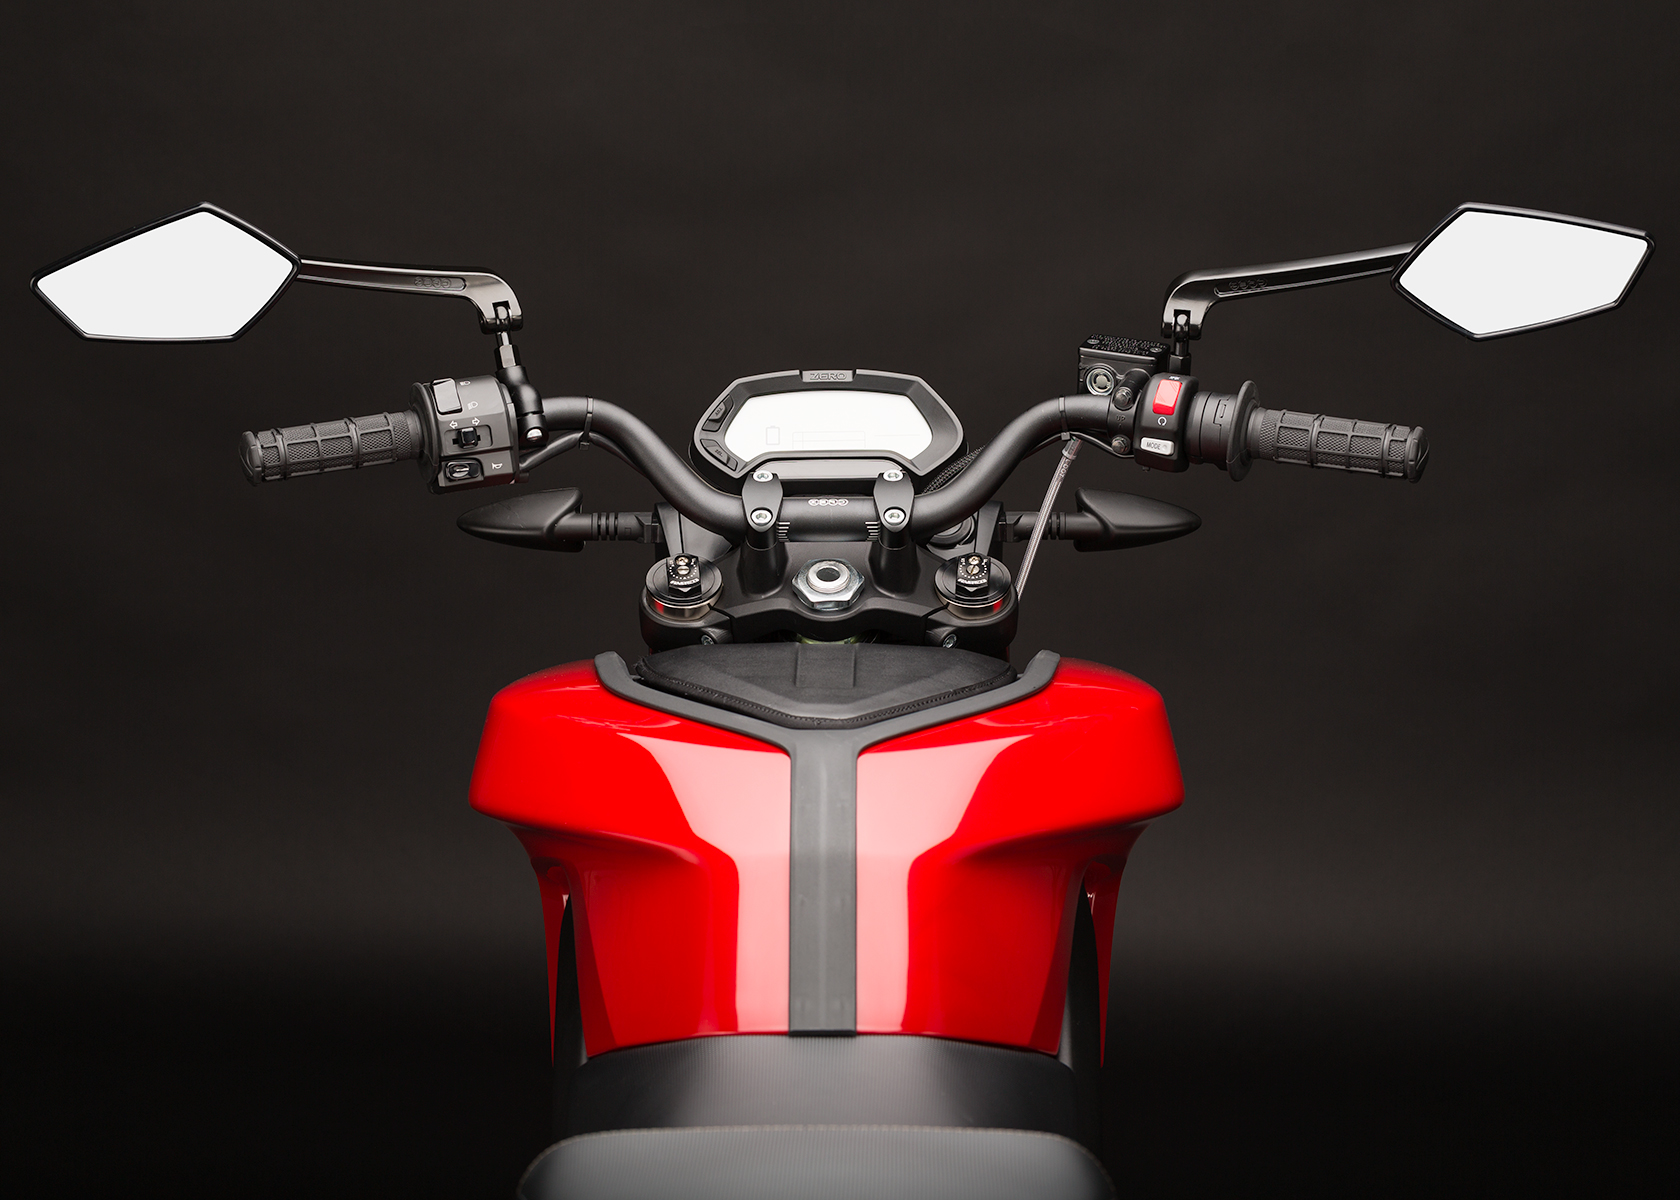 2014 Zero SR Electric Motorcycle: Rider View